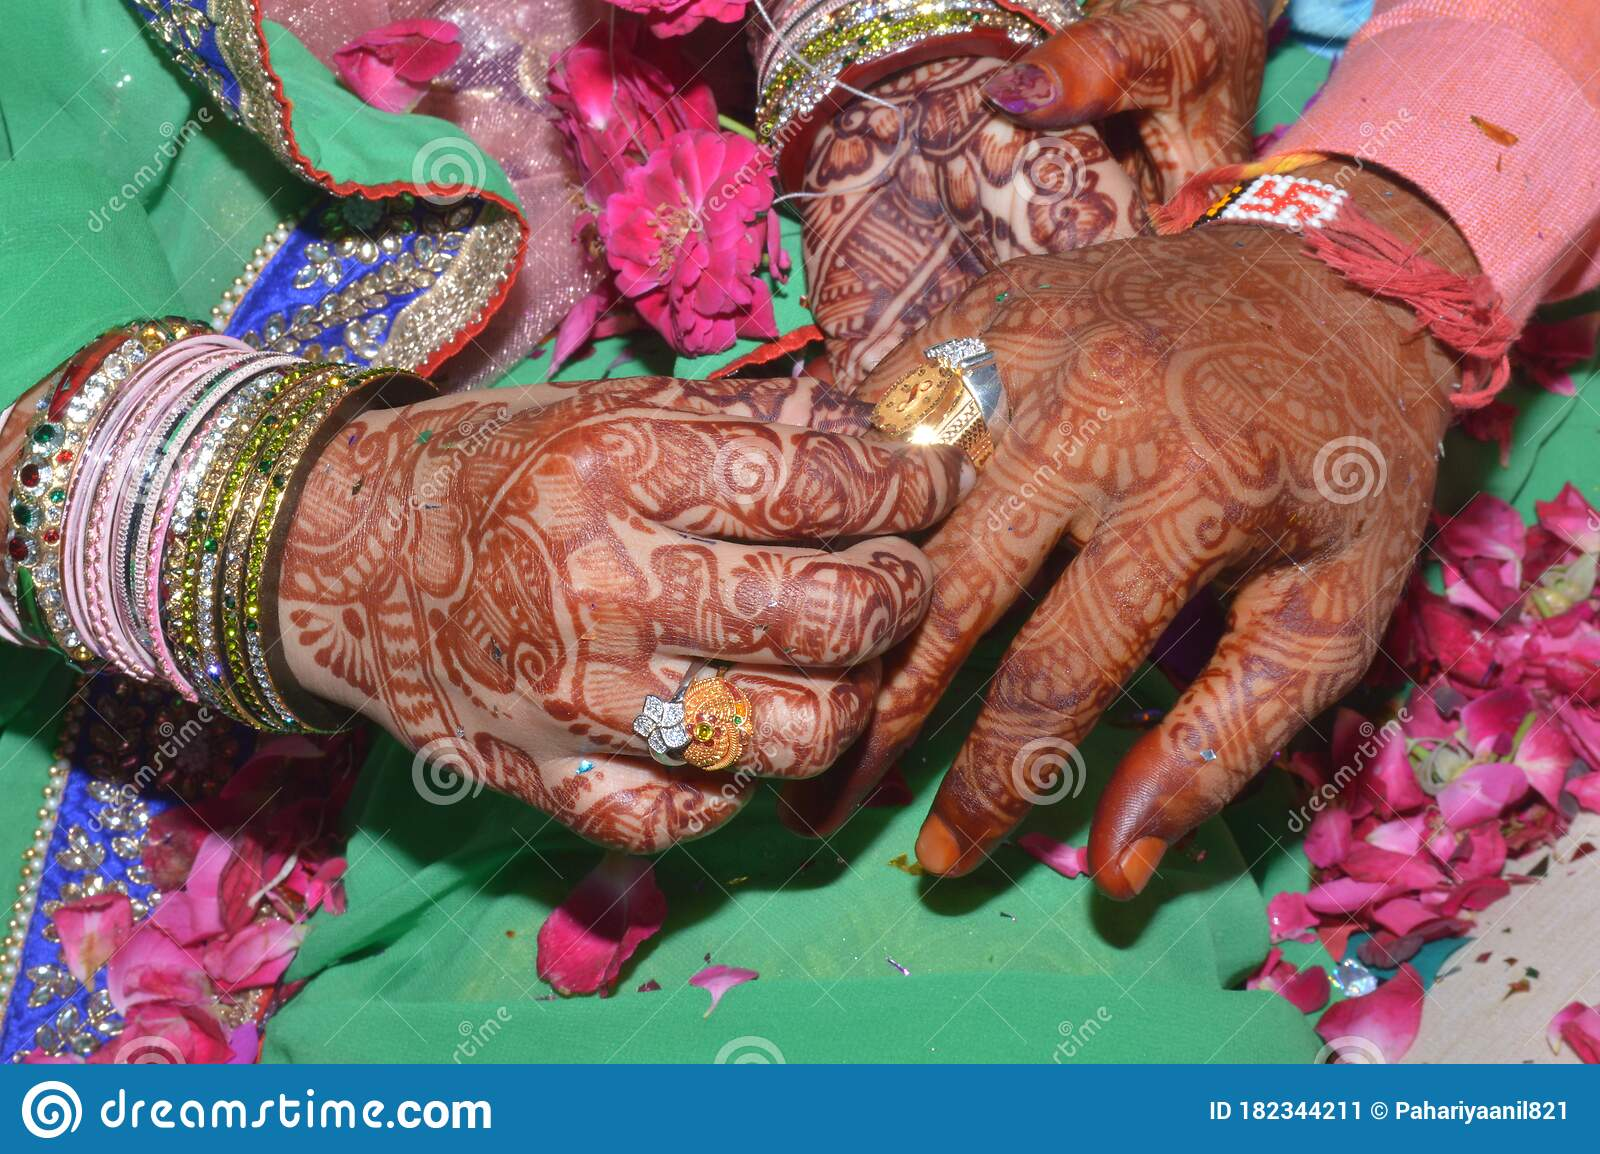 641 Hindu Engagement Photos Free Royalty Free Stock Photos From Dreamstime 56,000+ vectors, stock photos & psd files. dreamstime com